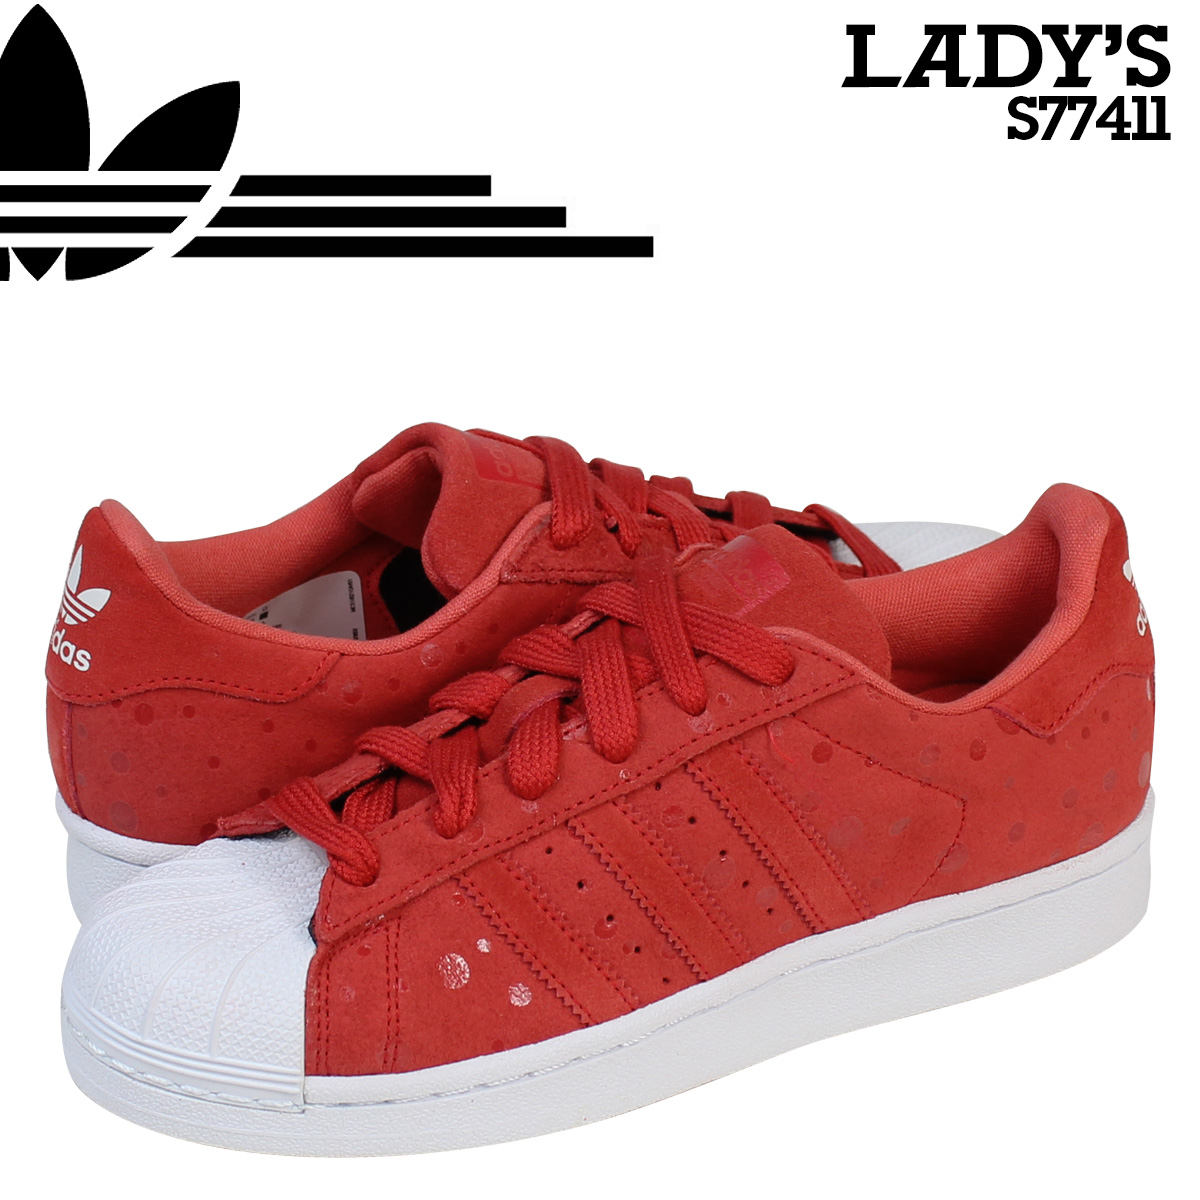 Whats Up Sports Adidas Originals Adidas Originals Superstar